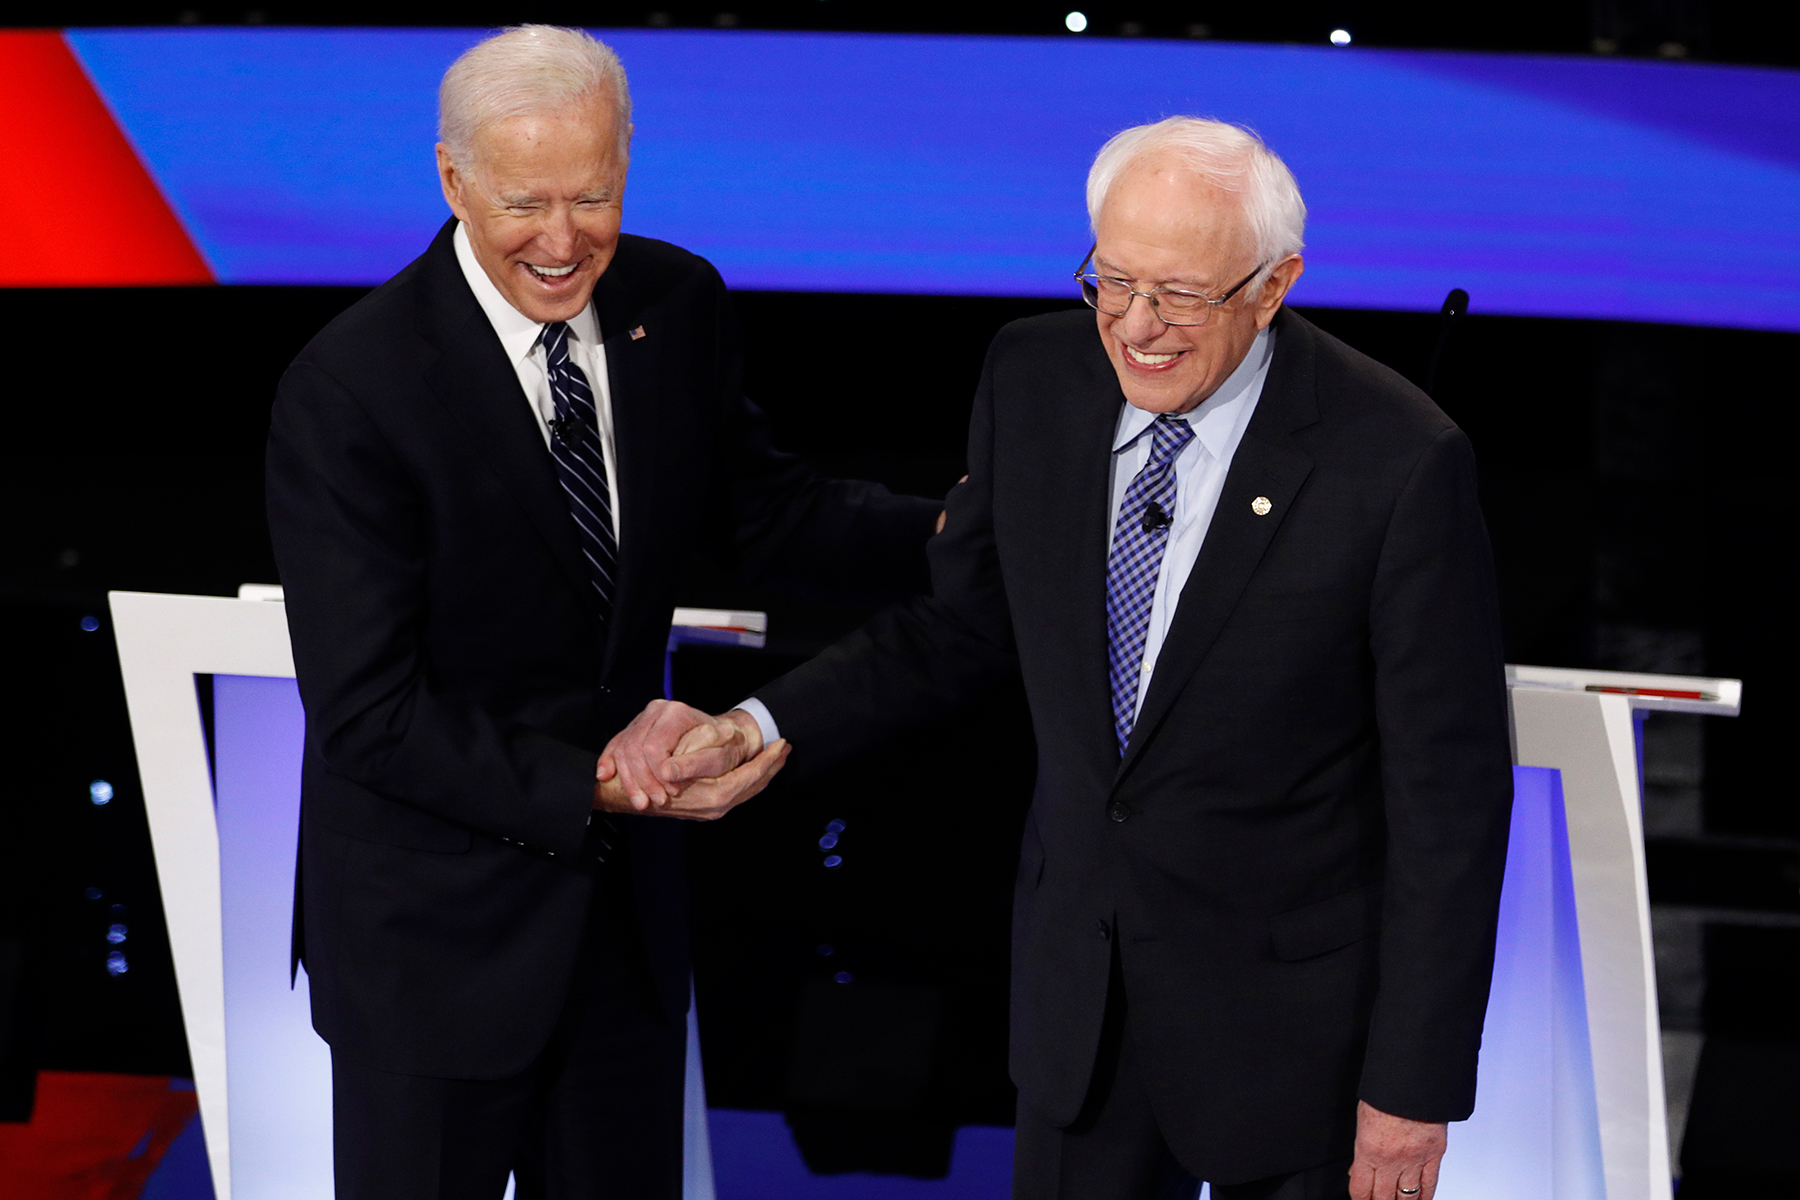 Democratic presidential candidates former Vice President Joe Biden, left, and Sen. Bernie Sanders, I-Vt., greet each other Tuesday, Jan. 14, 2020, before a Democratic presidential primary debate hosted by CNN and the Des Moines Register in Des Moines, Iowa. (AP Photo/Patrick Semansky)